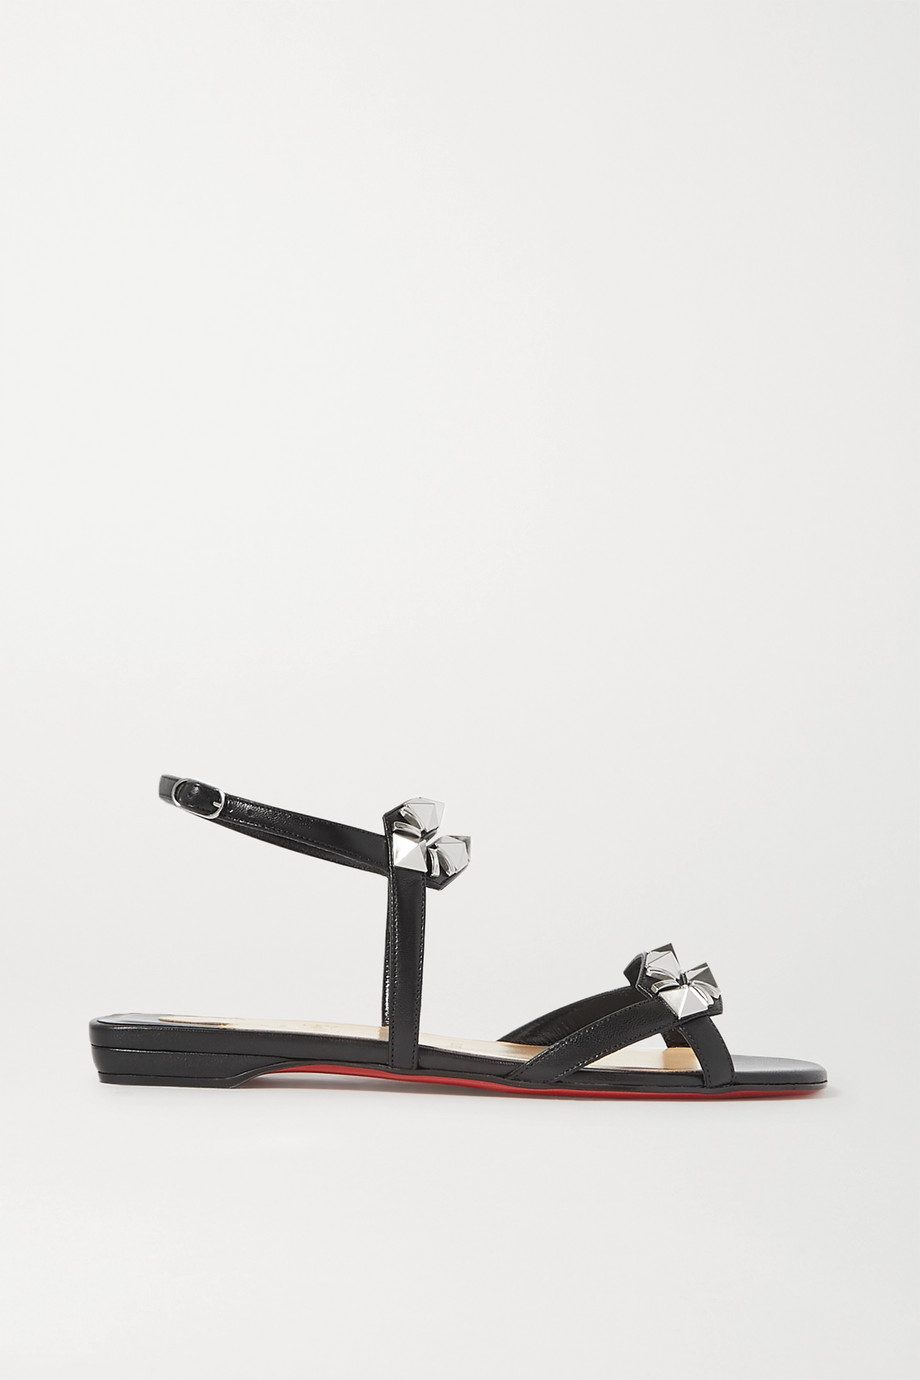 CHRISTIAN LOUBOUTIN Galerietta studded leather sandals